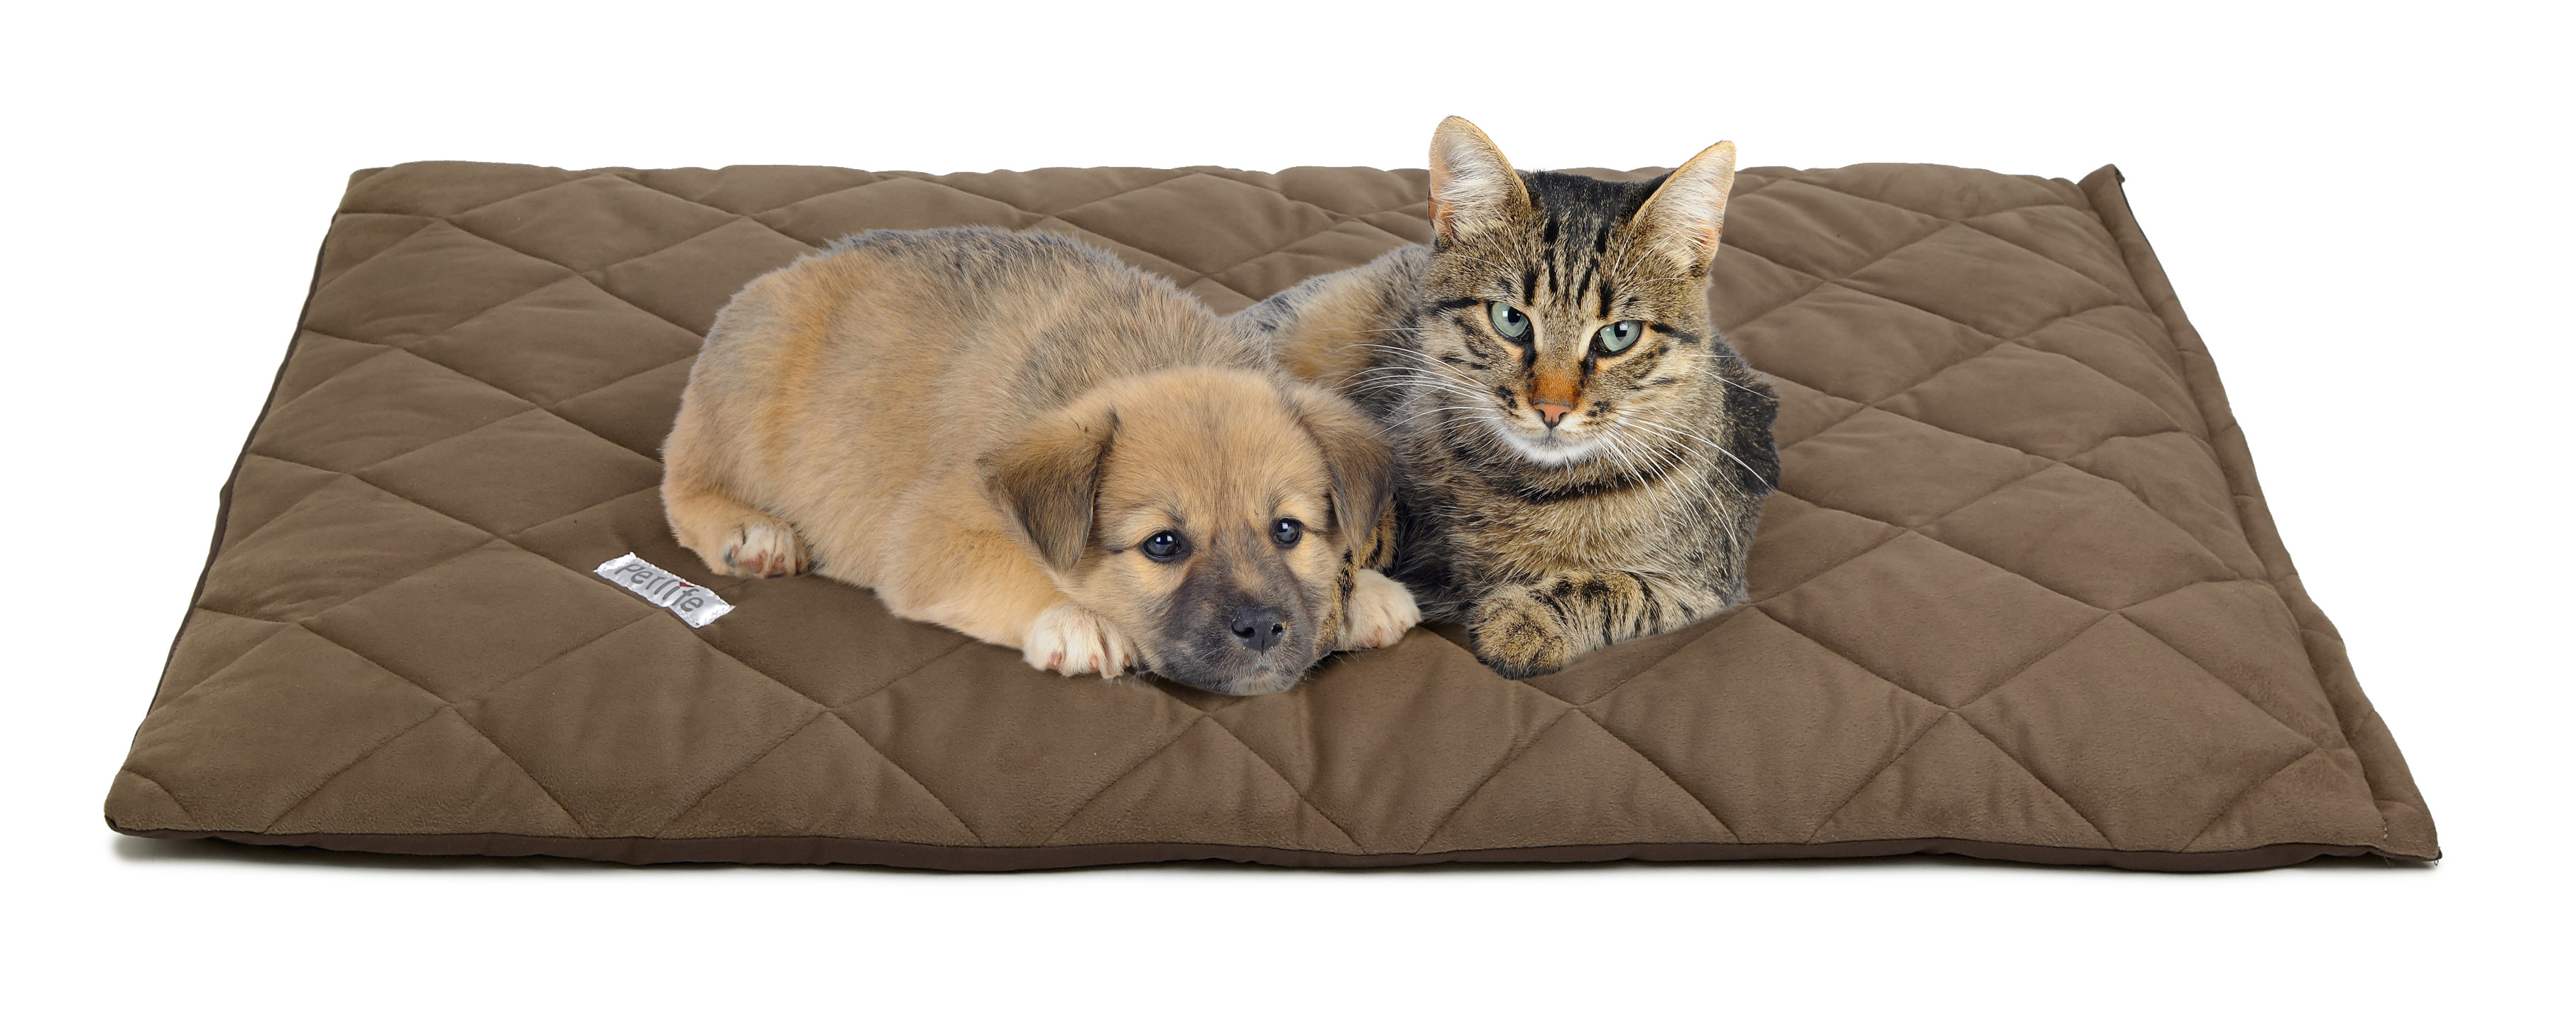 5 Smart Reasons for Purchasing Pet Supplies From an Online Store